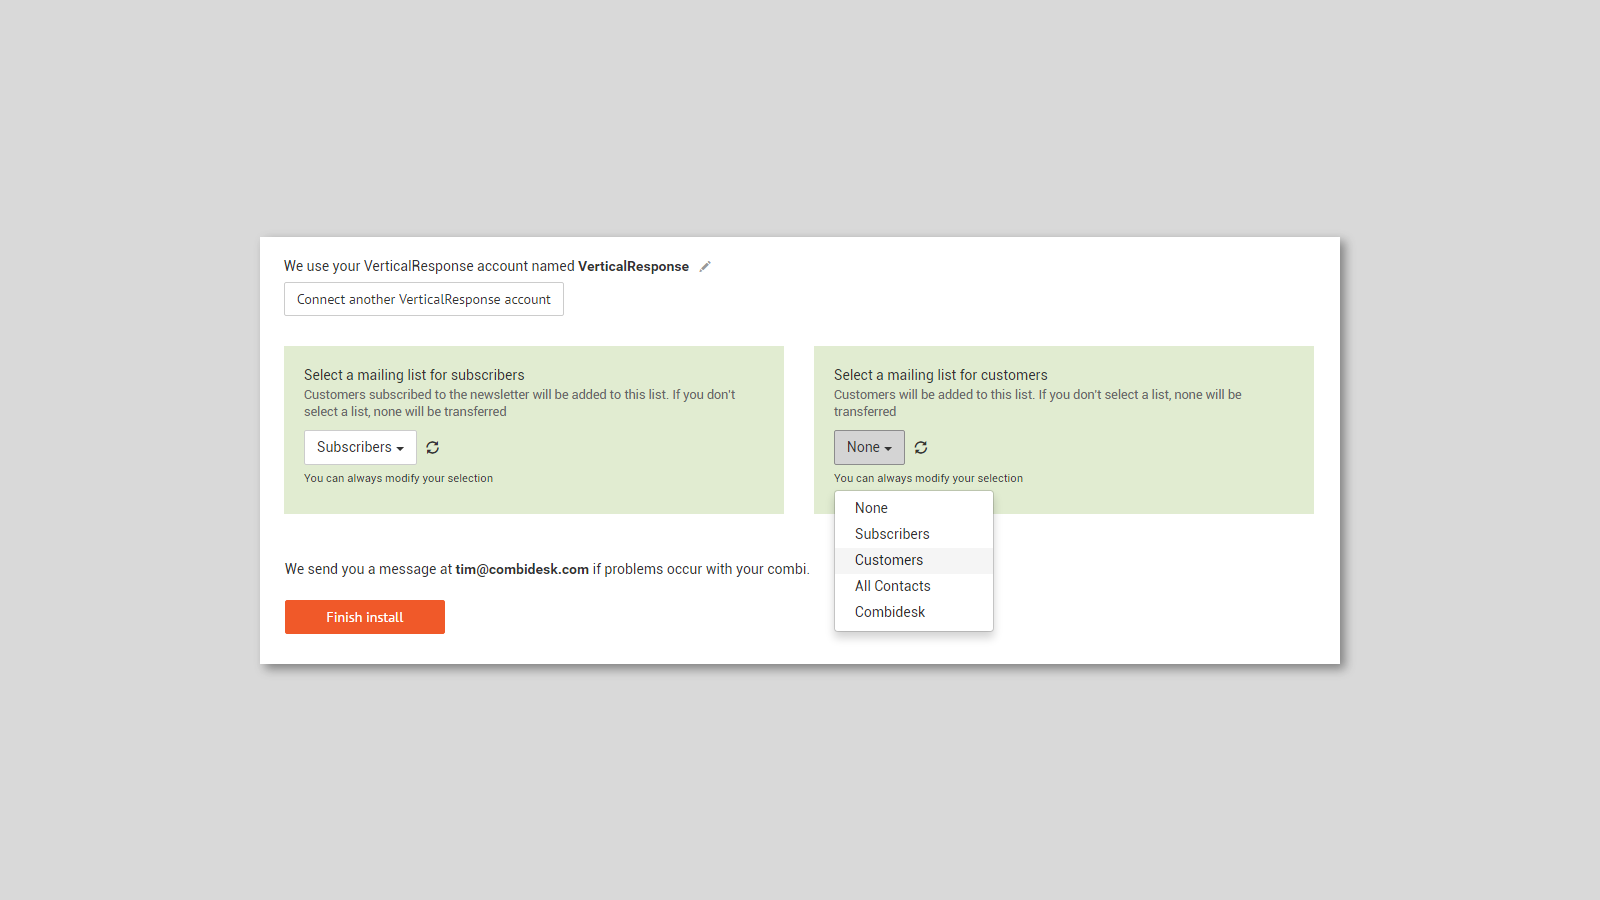 Shopify verticalresponse integration - select your mailing list